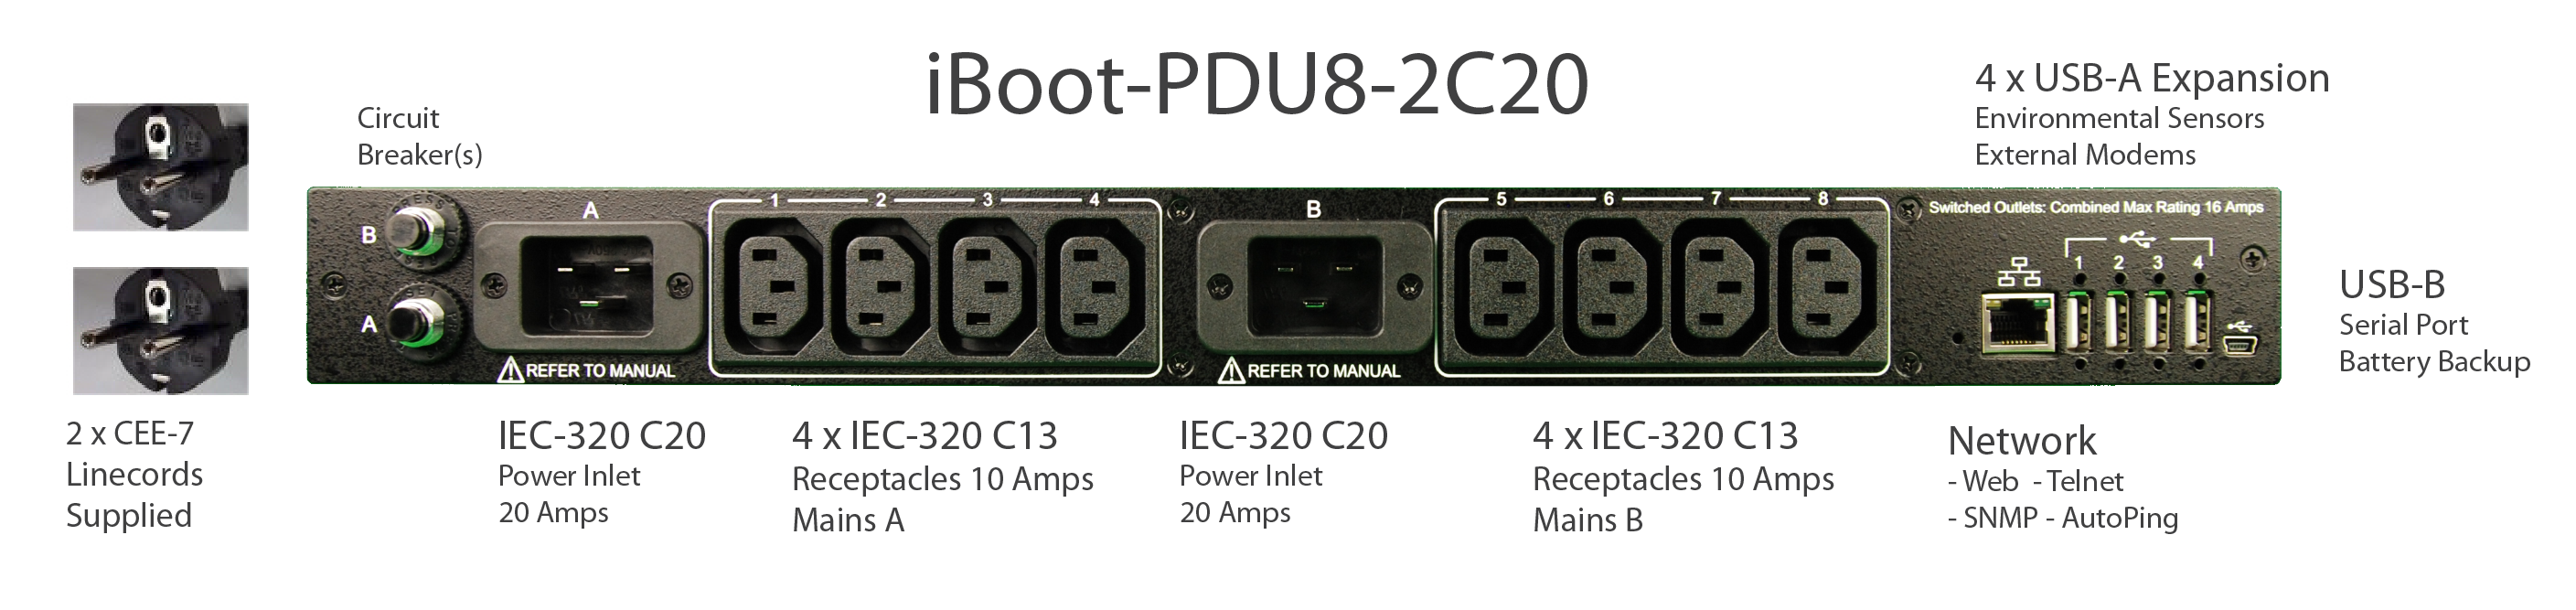 iBoot-PDU8-2C20 for Remote Reboot, 2 x IEC C20 .